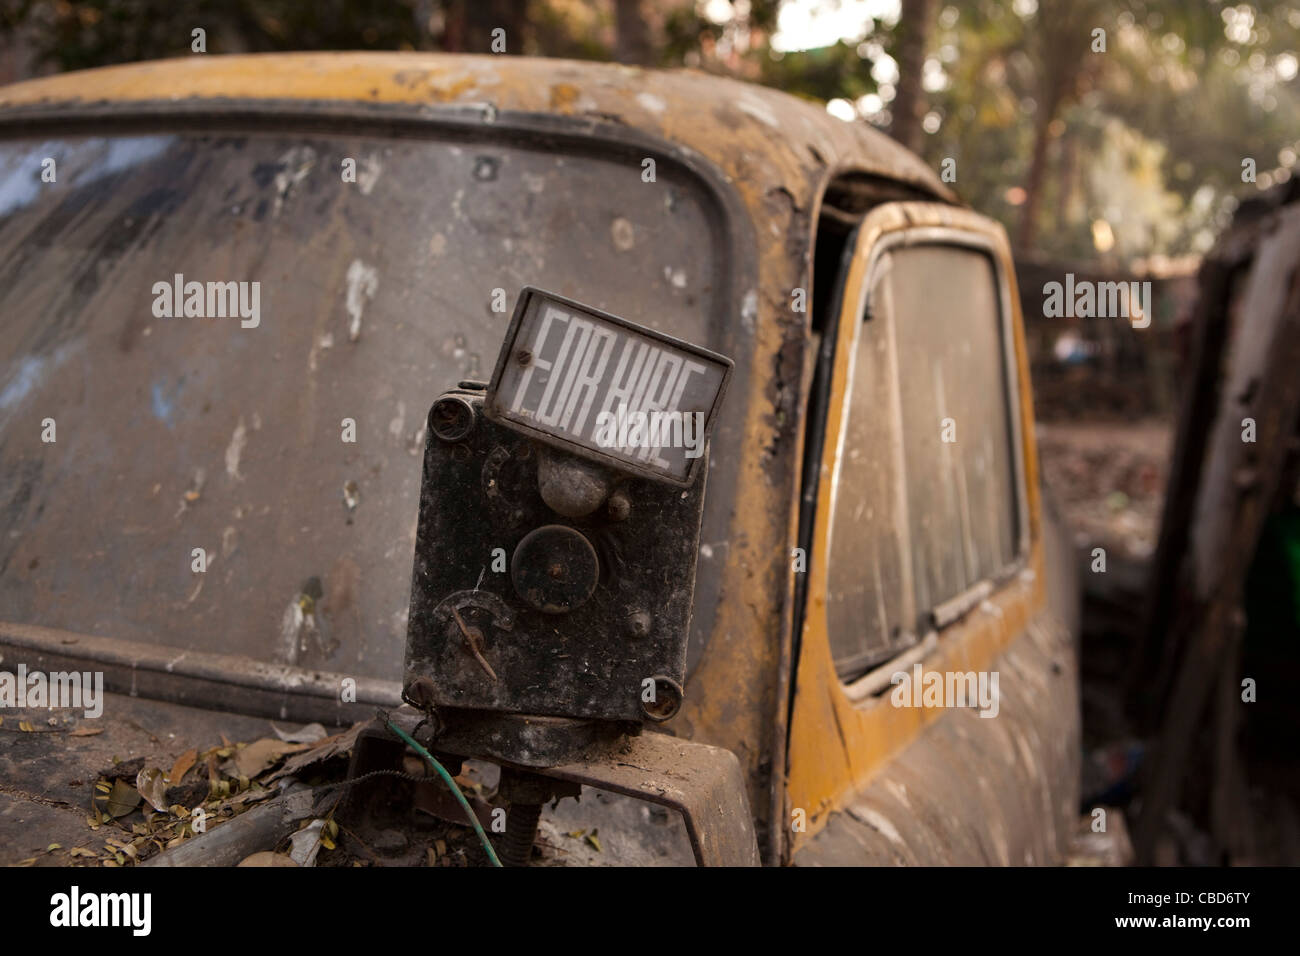 India, West Bengal, Kolkata, Rabindra Sarovar, for hire sign of derelict Hindustan Ambassador taxi buried in rubbish - Stock Image